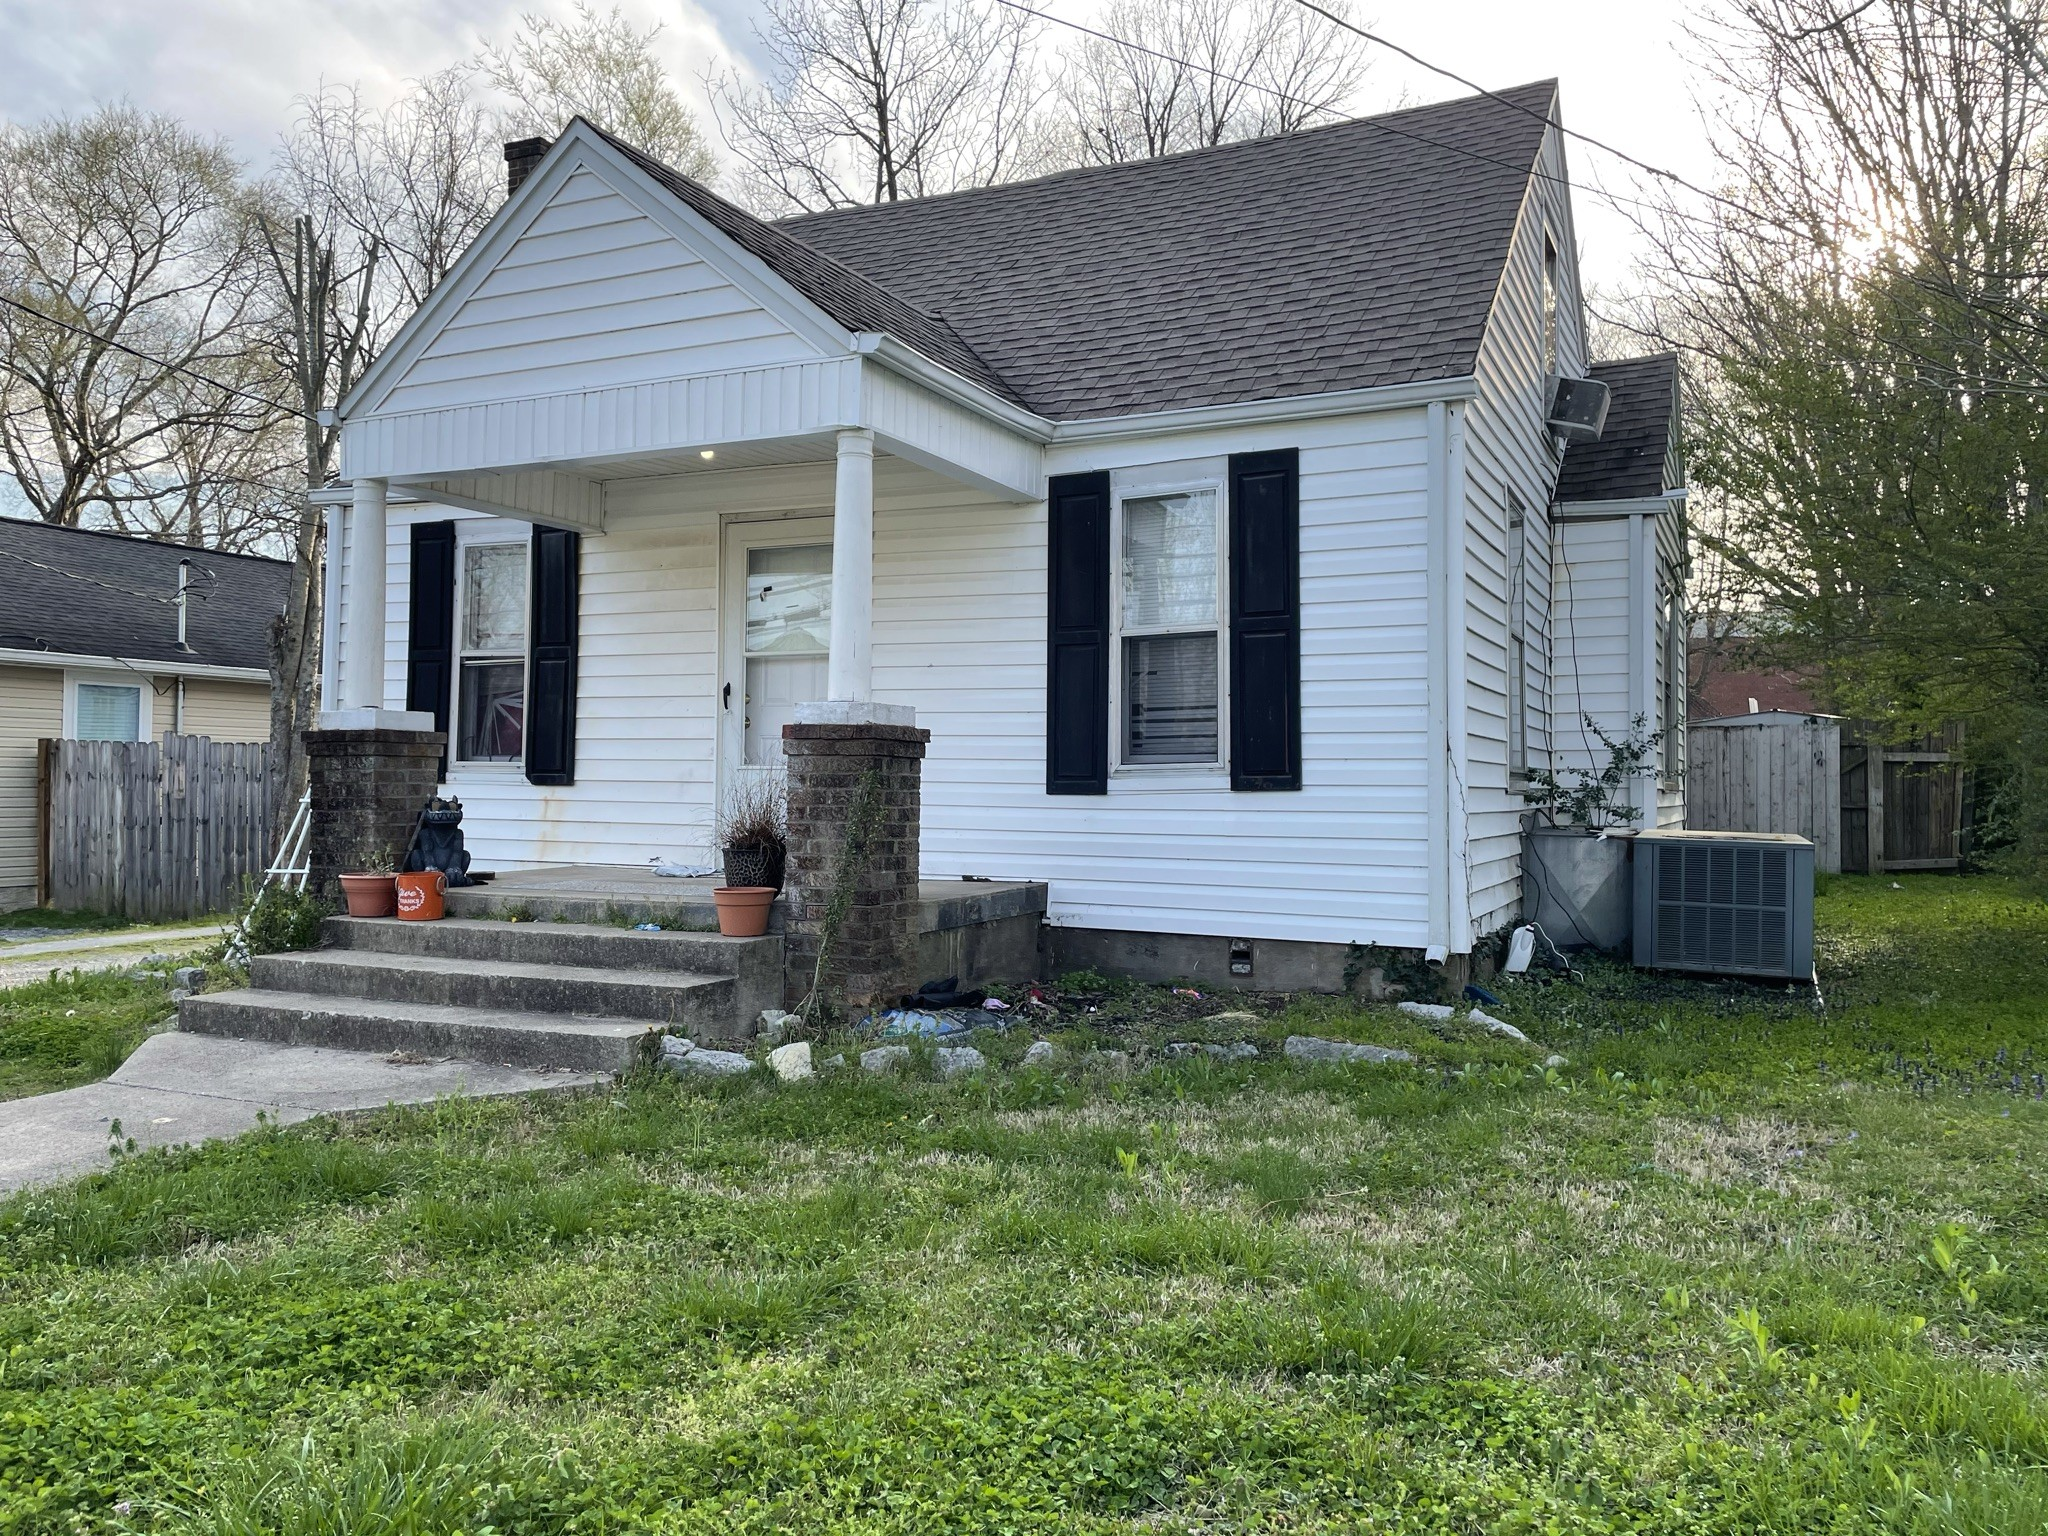 122 Cornwell Ave Property Photo - Watertown, TN real estate listing